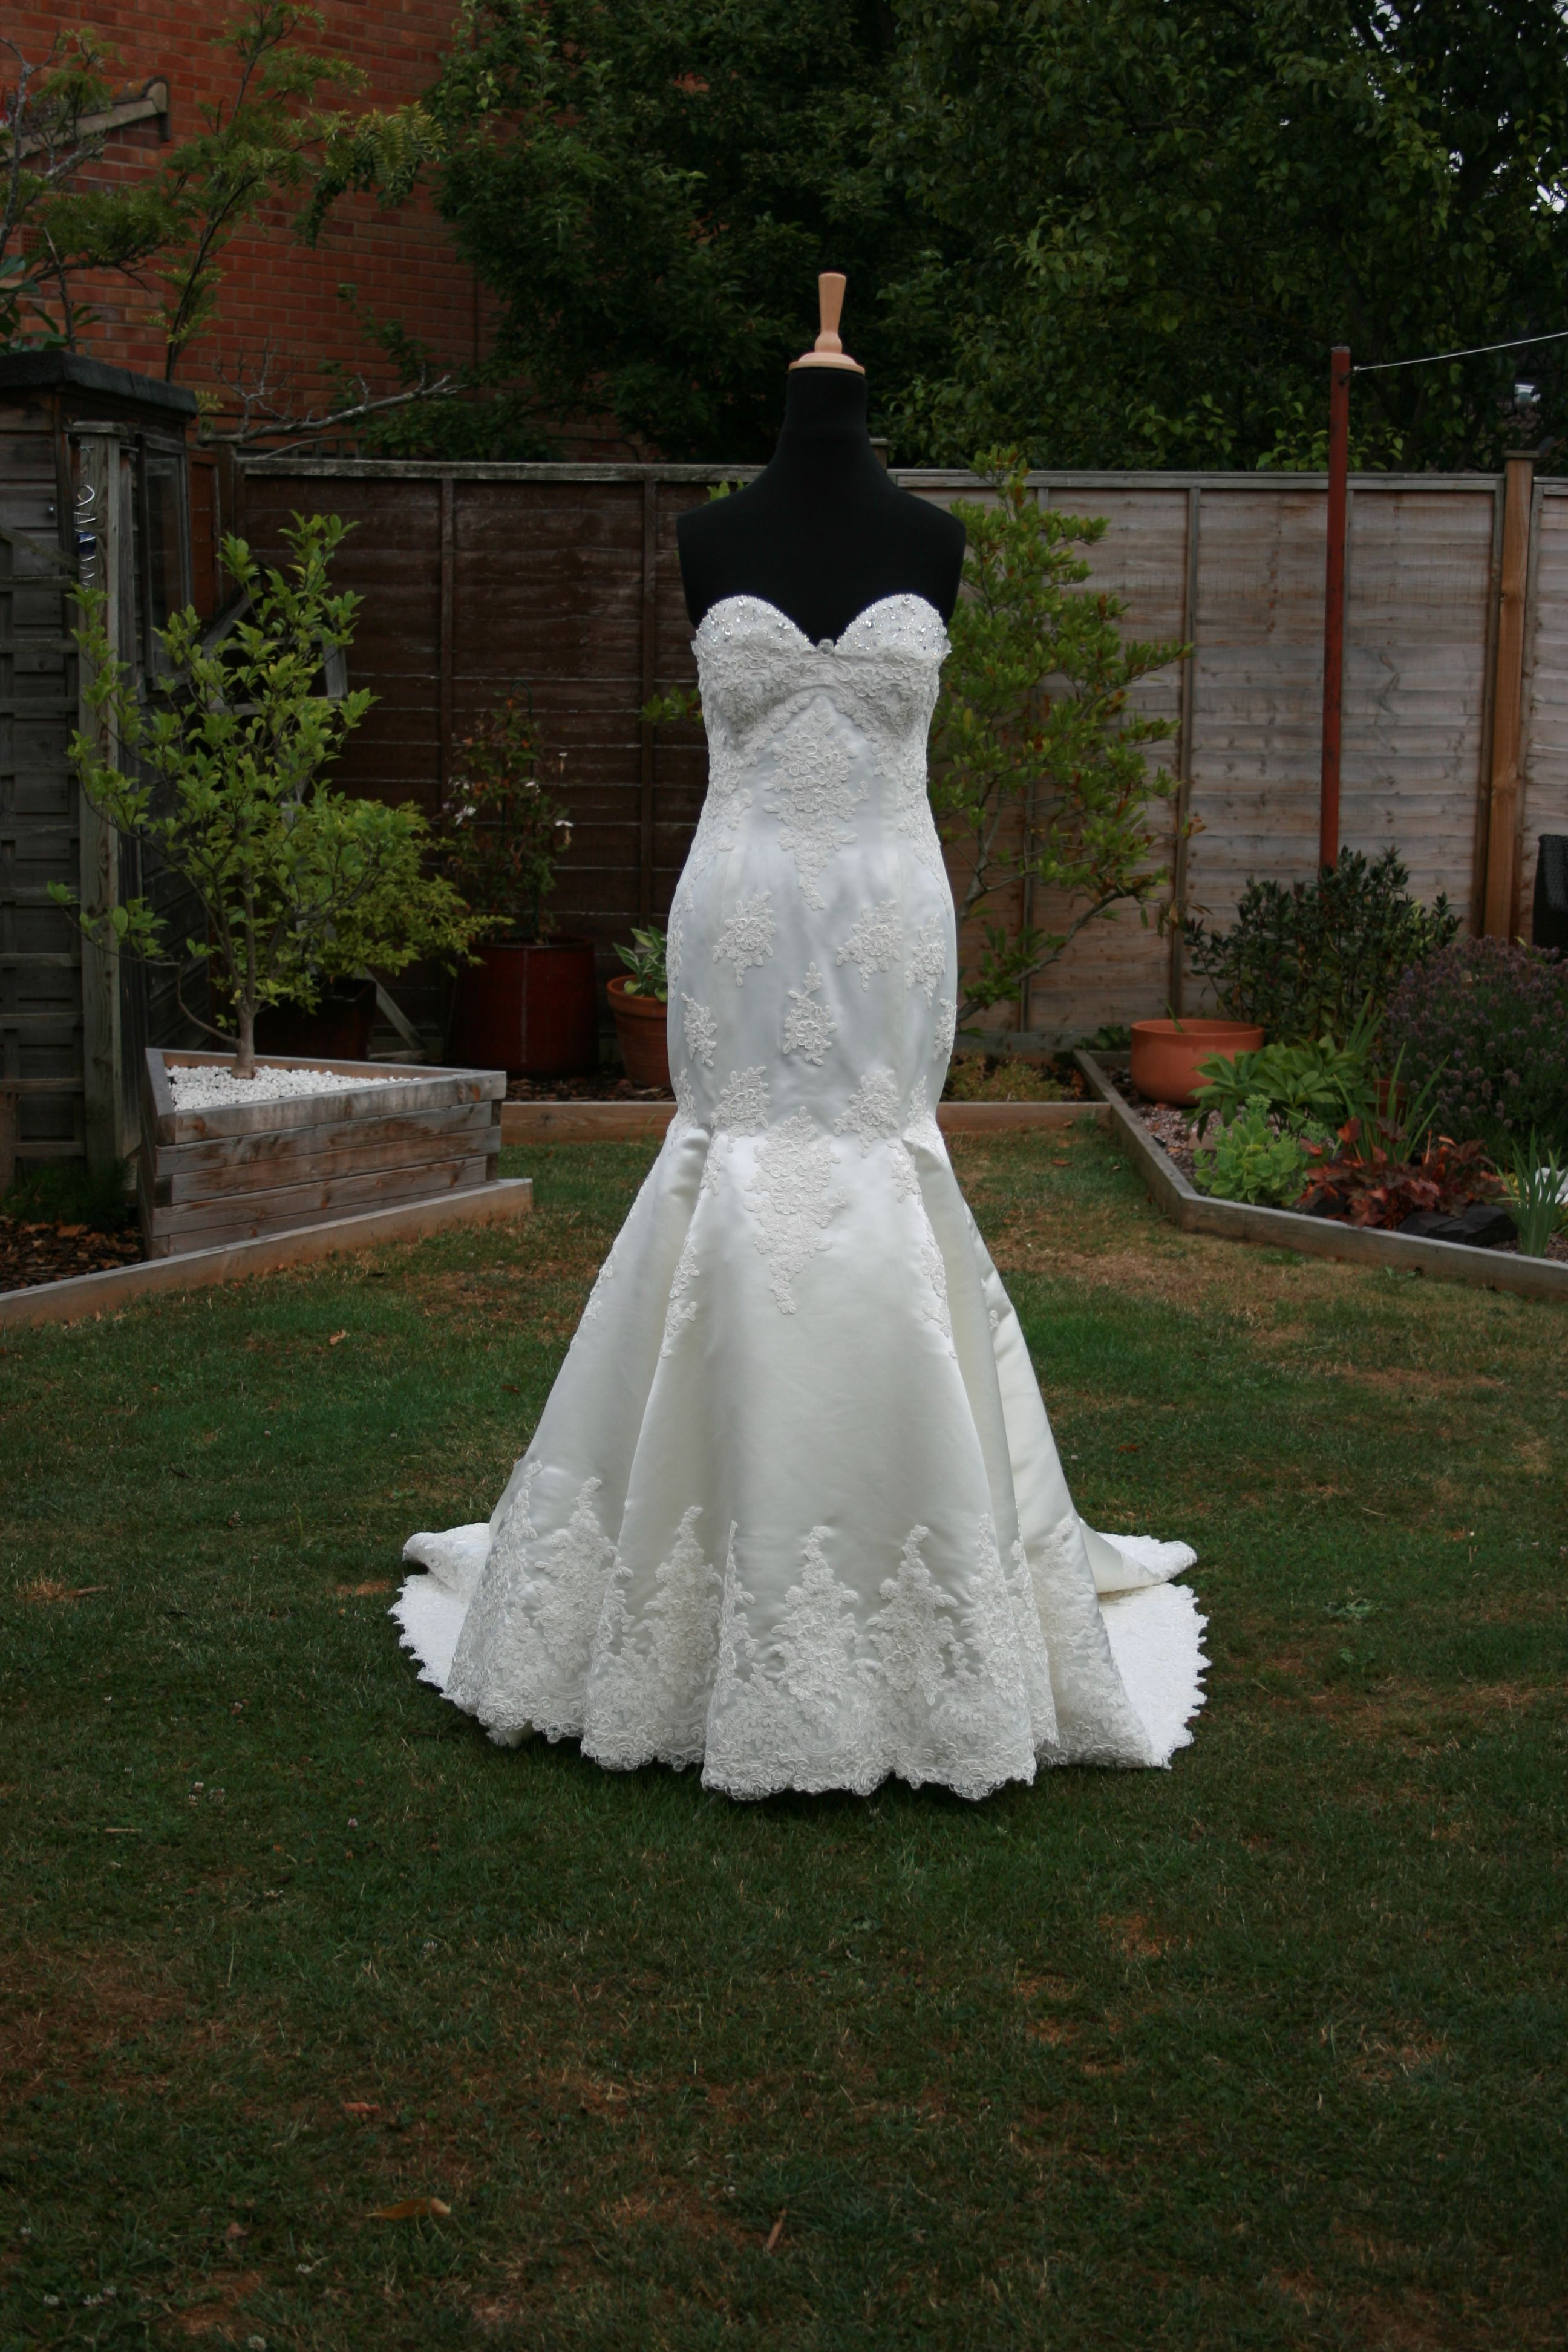 Susie Grist Couture Bespoke Wedding Dresses Is Located In Abingdon Near Oxford